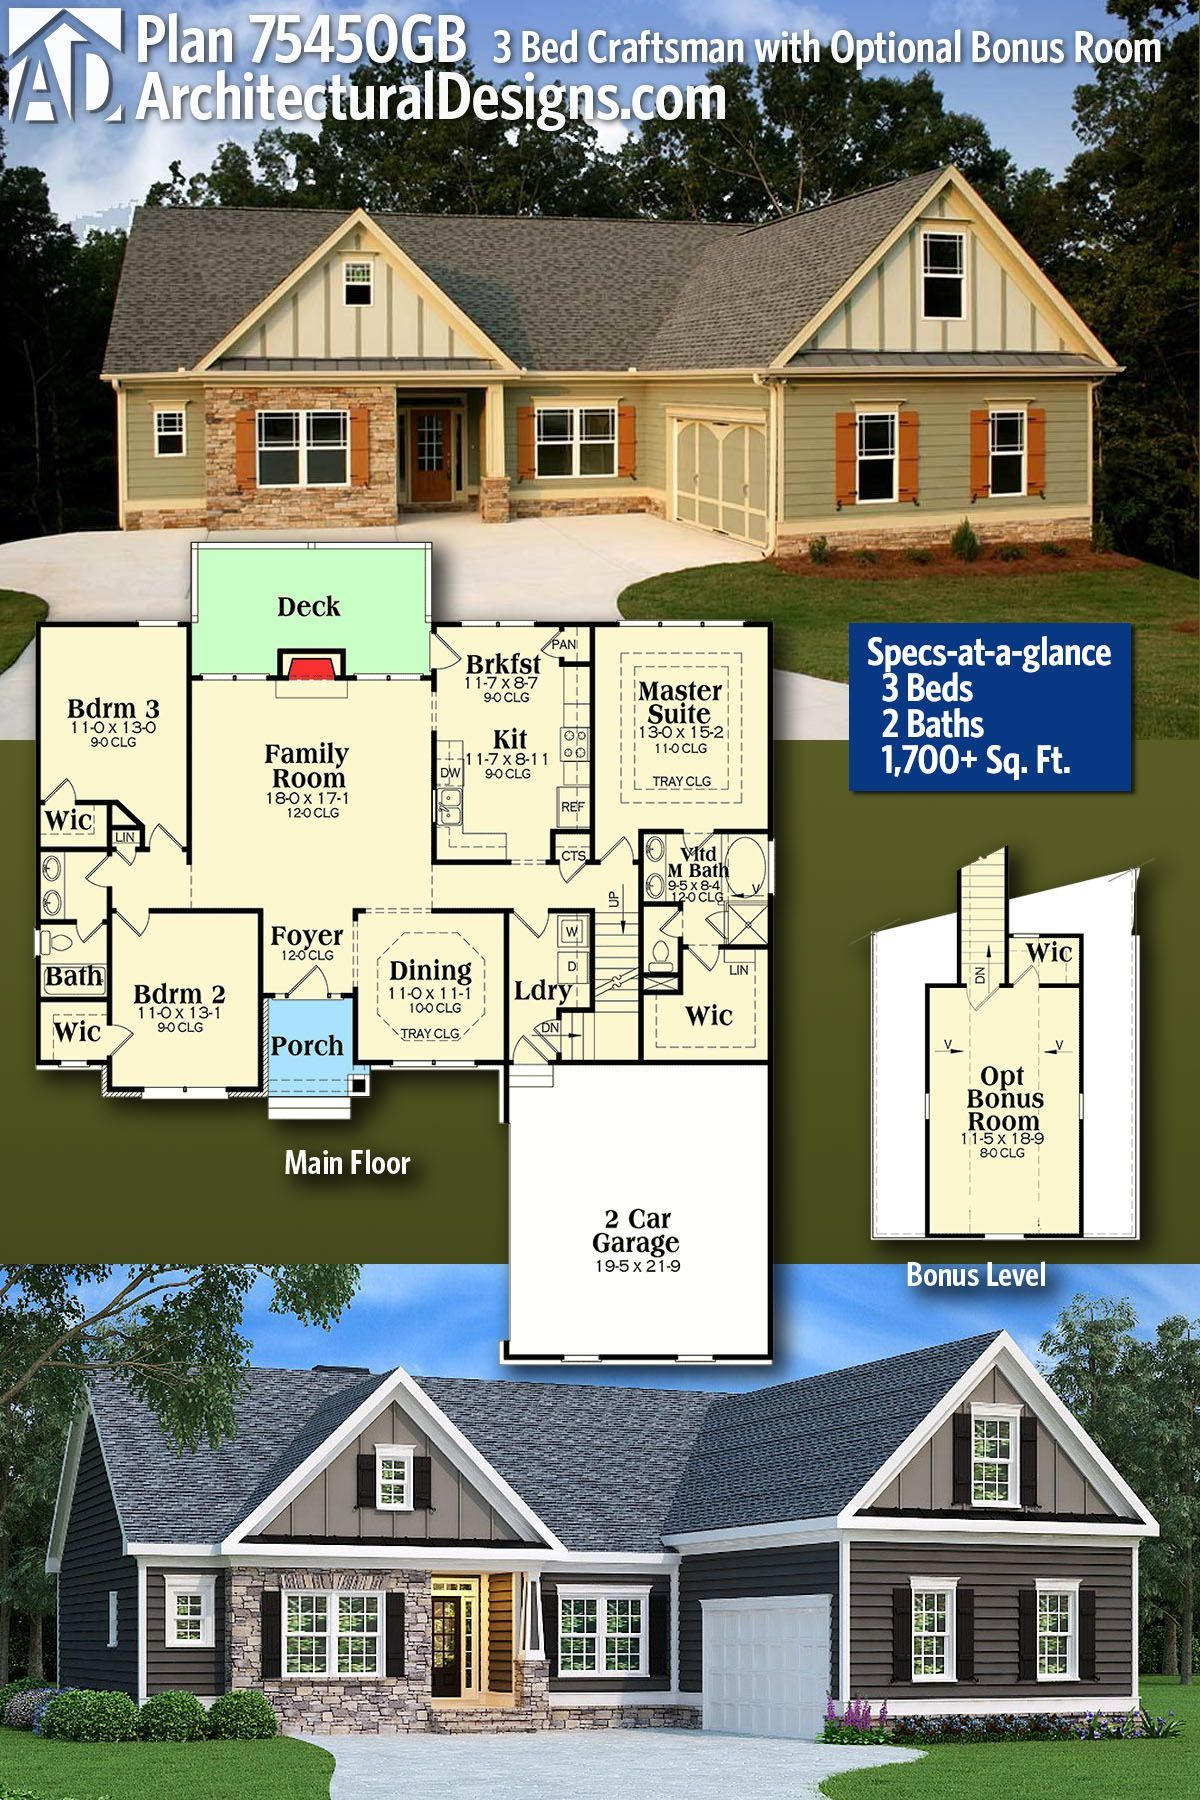 single story ranch houses for sale near me